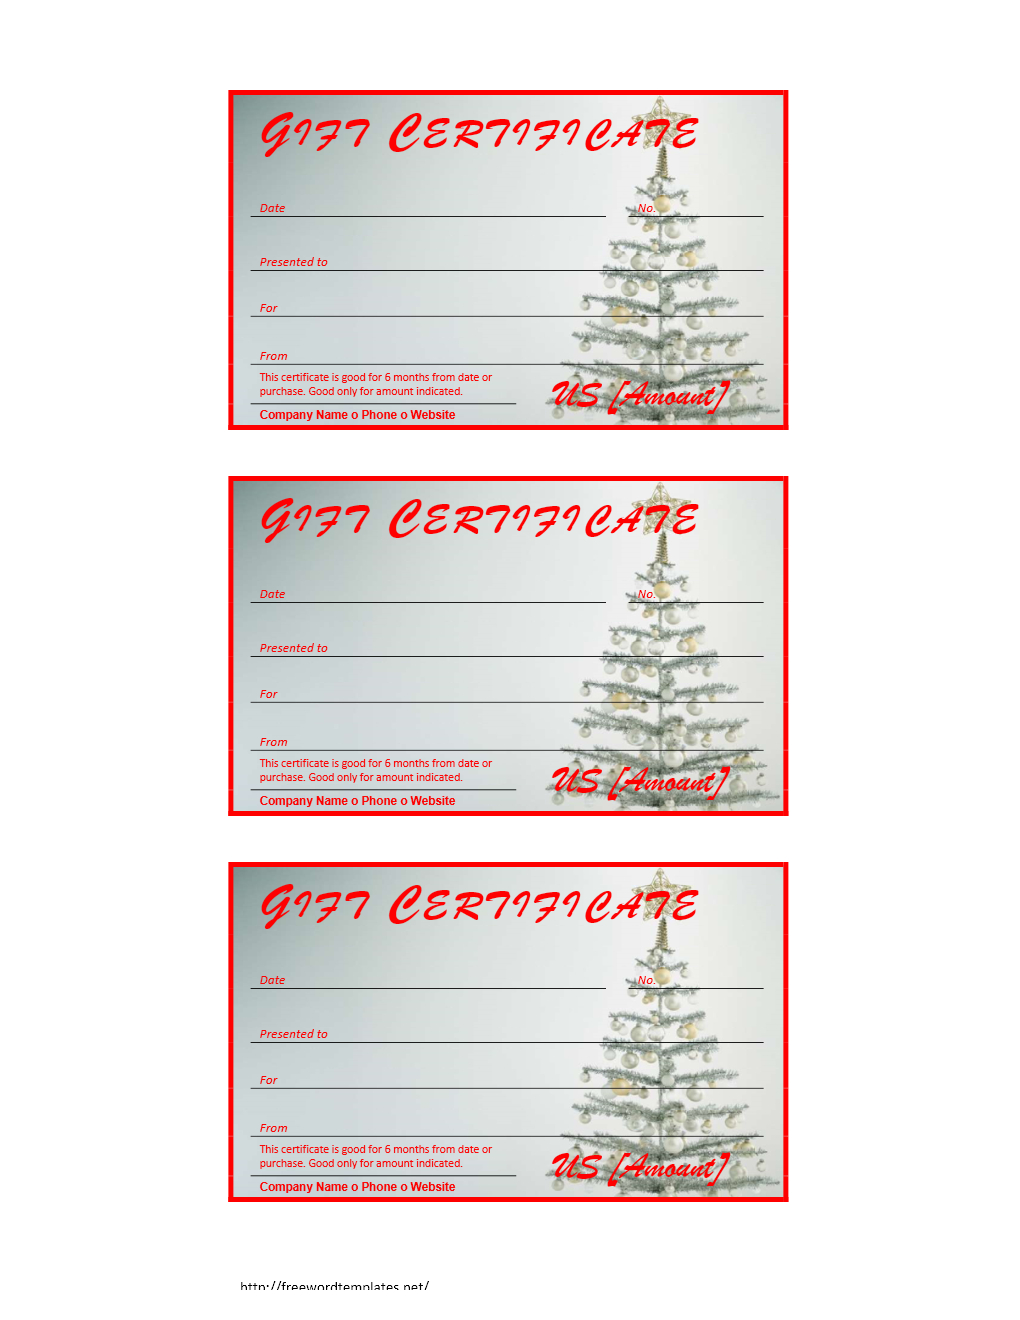 Free Gift Certificate Archives | Freewordtemplates - Free Printable Christmas Gift Voucher Templates